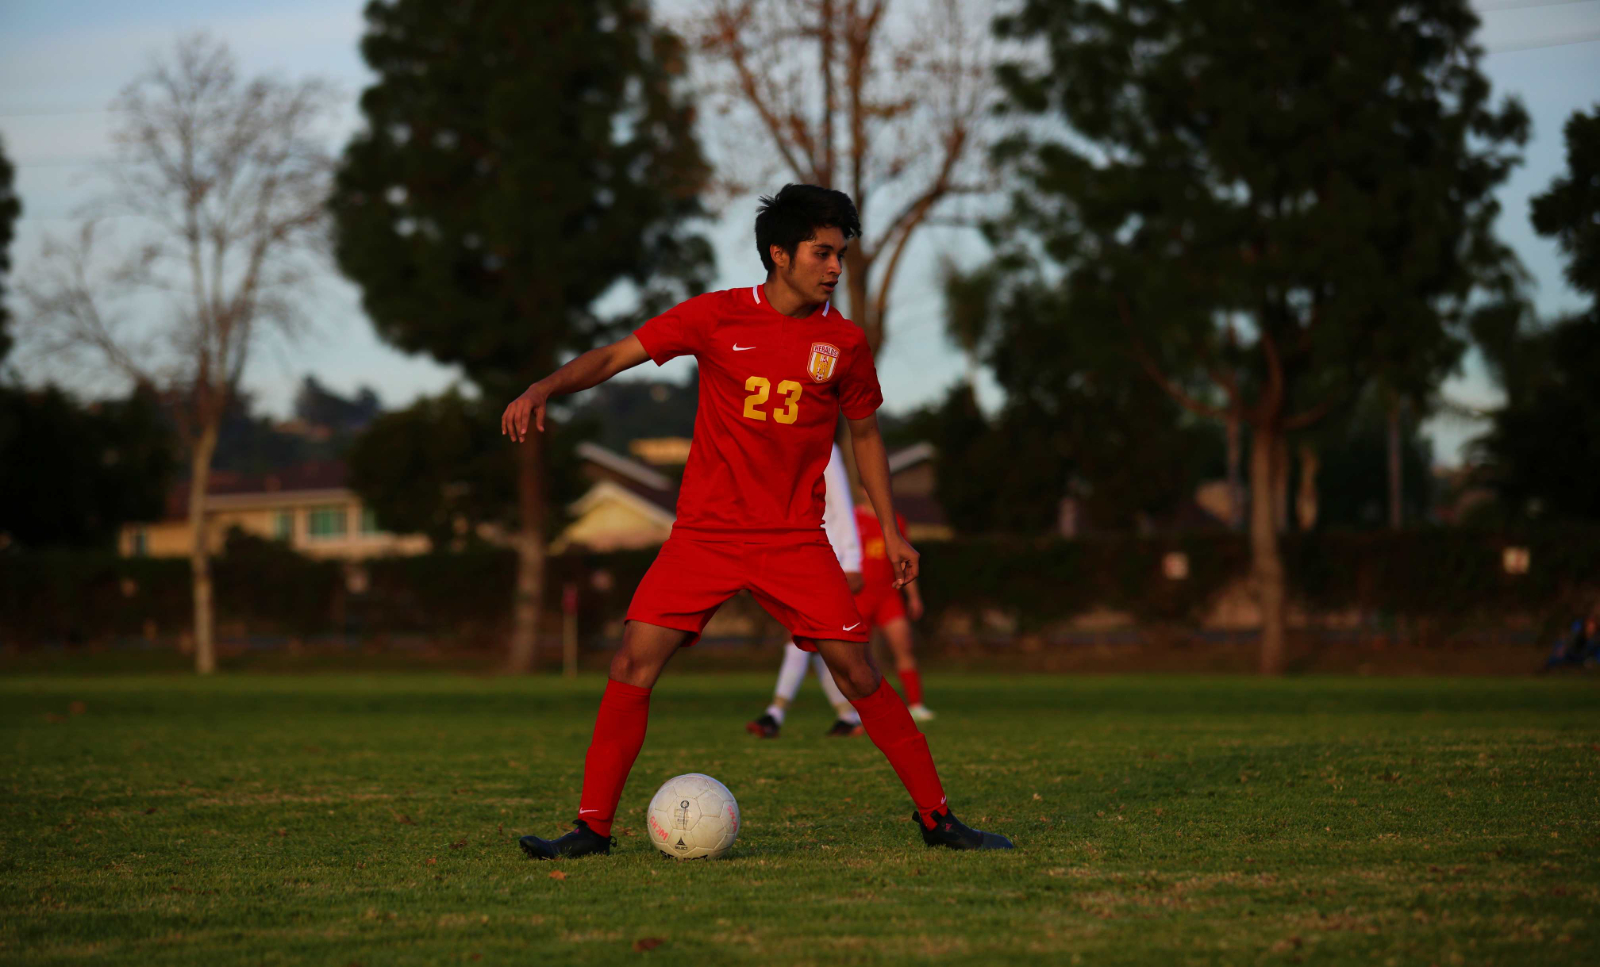 WCHS Varsity Boys Soccer vs. Cantwell Pictures (Volume 3)